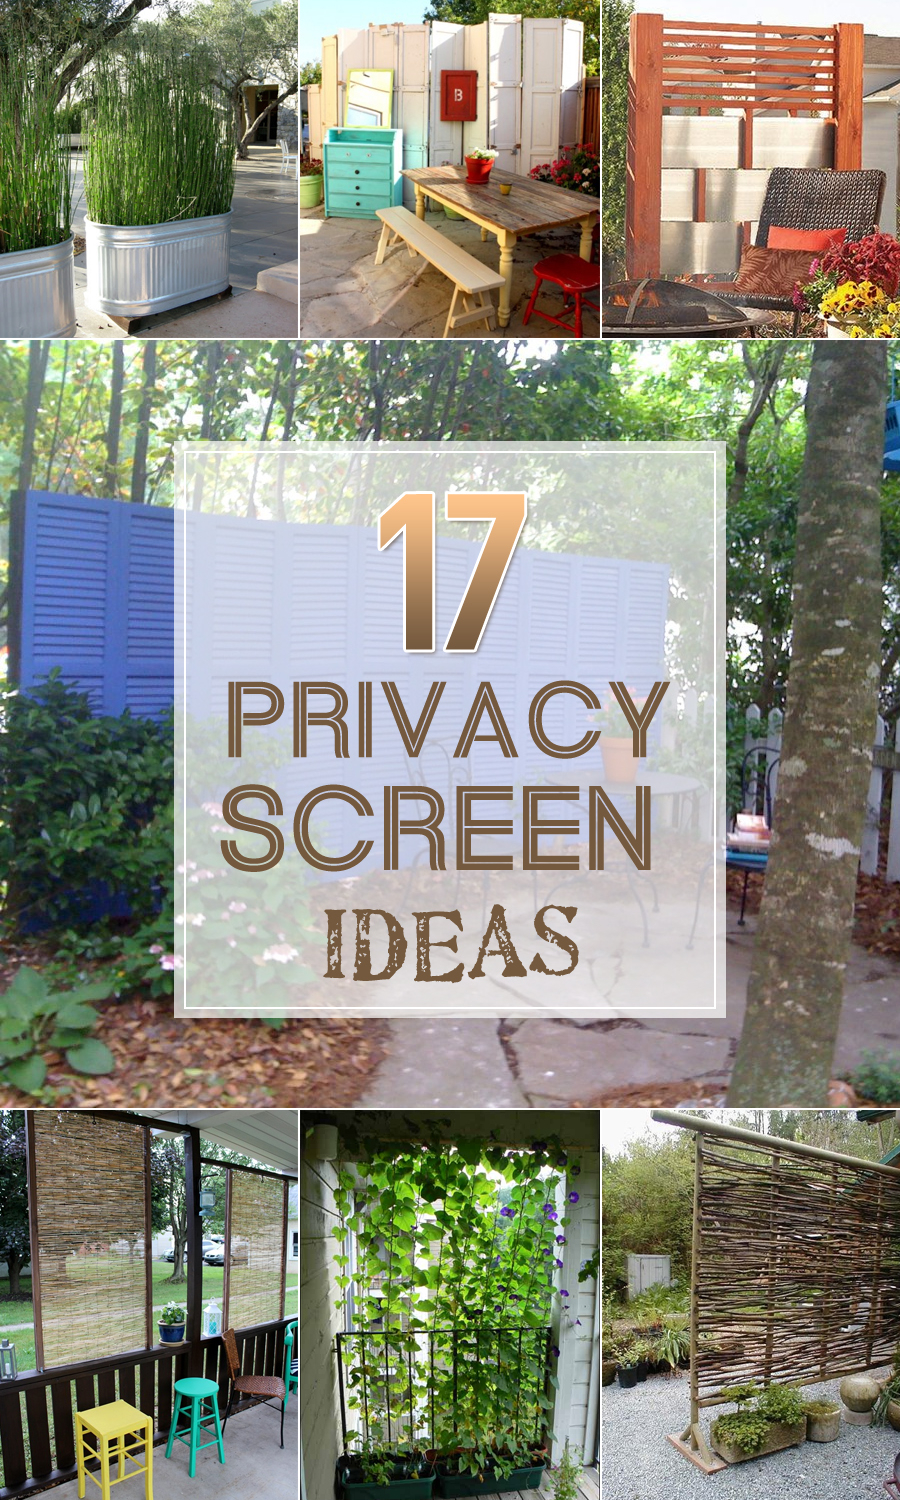 17 Privacy Screen Ideas Thatll Keep Your Neighbors From Snooping regarding Backyard Ideas For Privacy